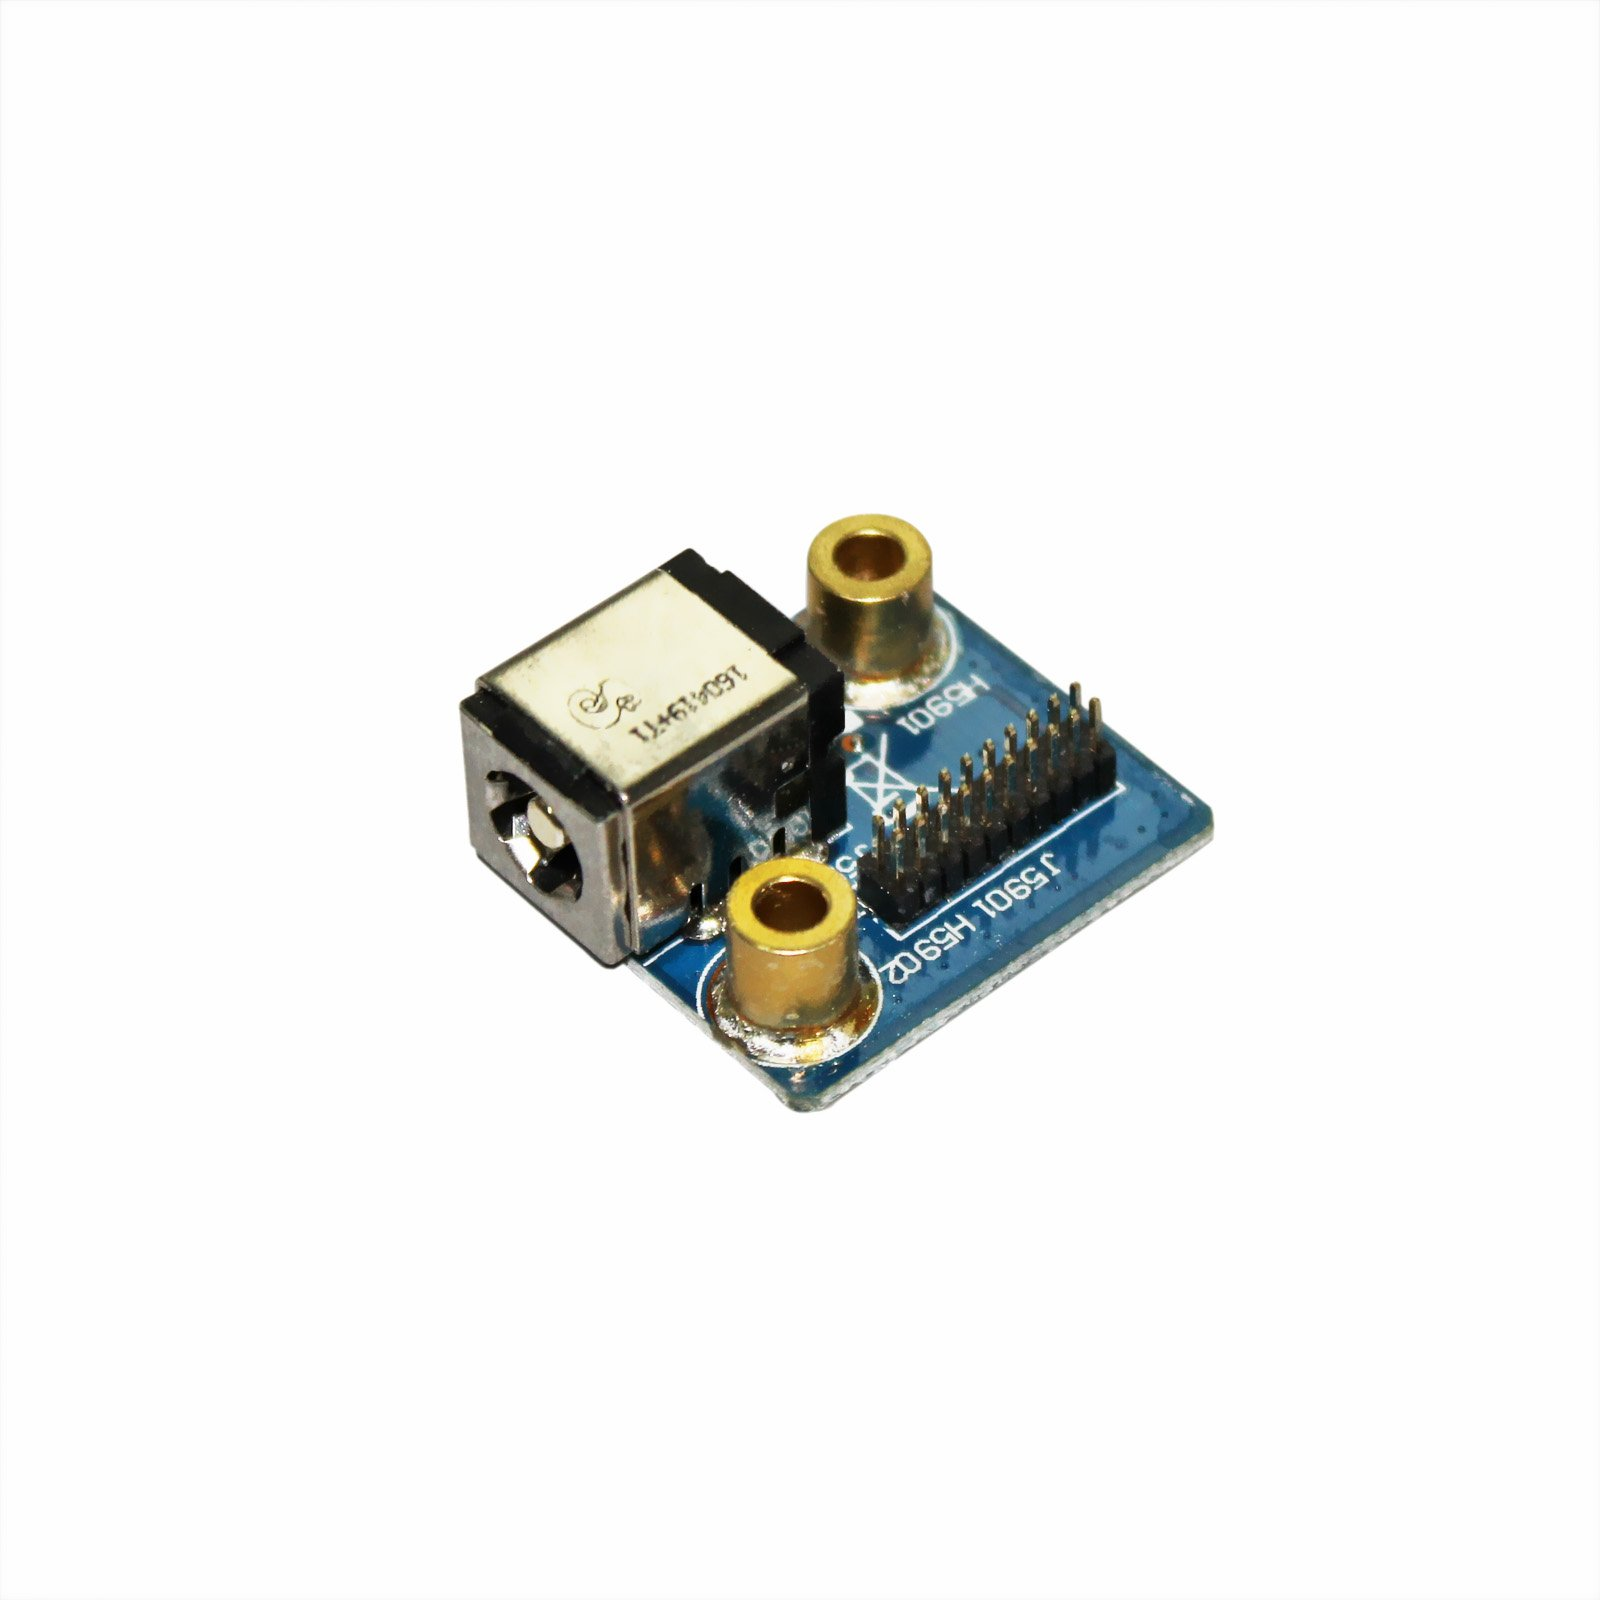 GinTai DC Power Jack Board Charging Port for Asus RoG G75 G75V G75VX G75VW G75VM G75VX-BHI7N1 69N0NQC10C01 by GinTai (Image #1)